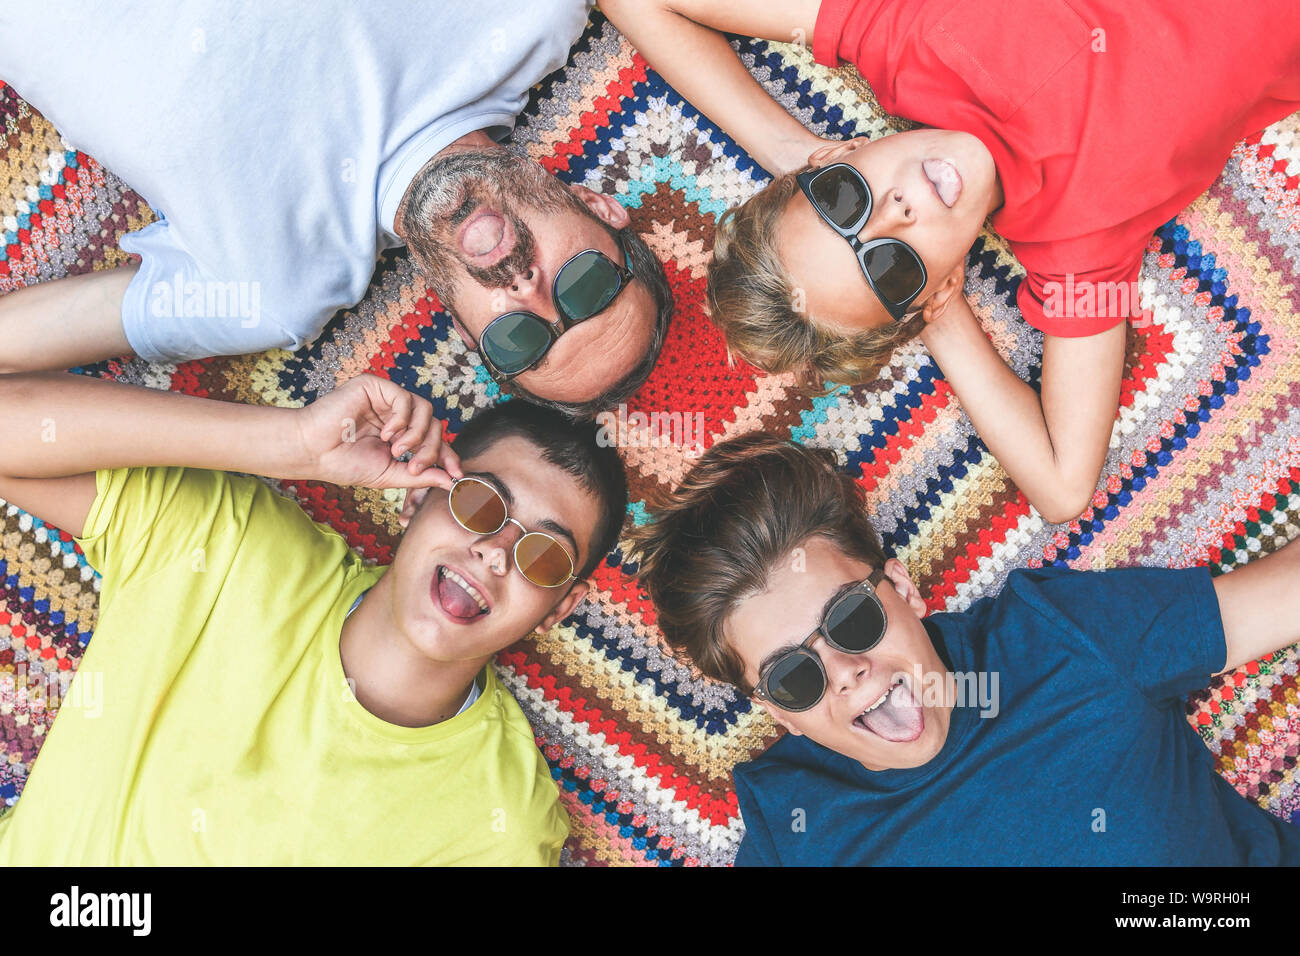 Father and sons enjoying together lying on a colorful blanket. Four men of different ages stick their tongue out with sunglasses. Group of people enjo Stock Photo